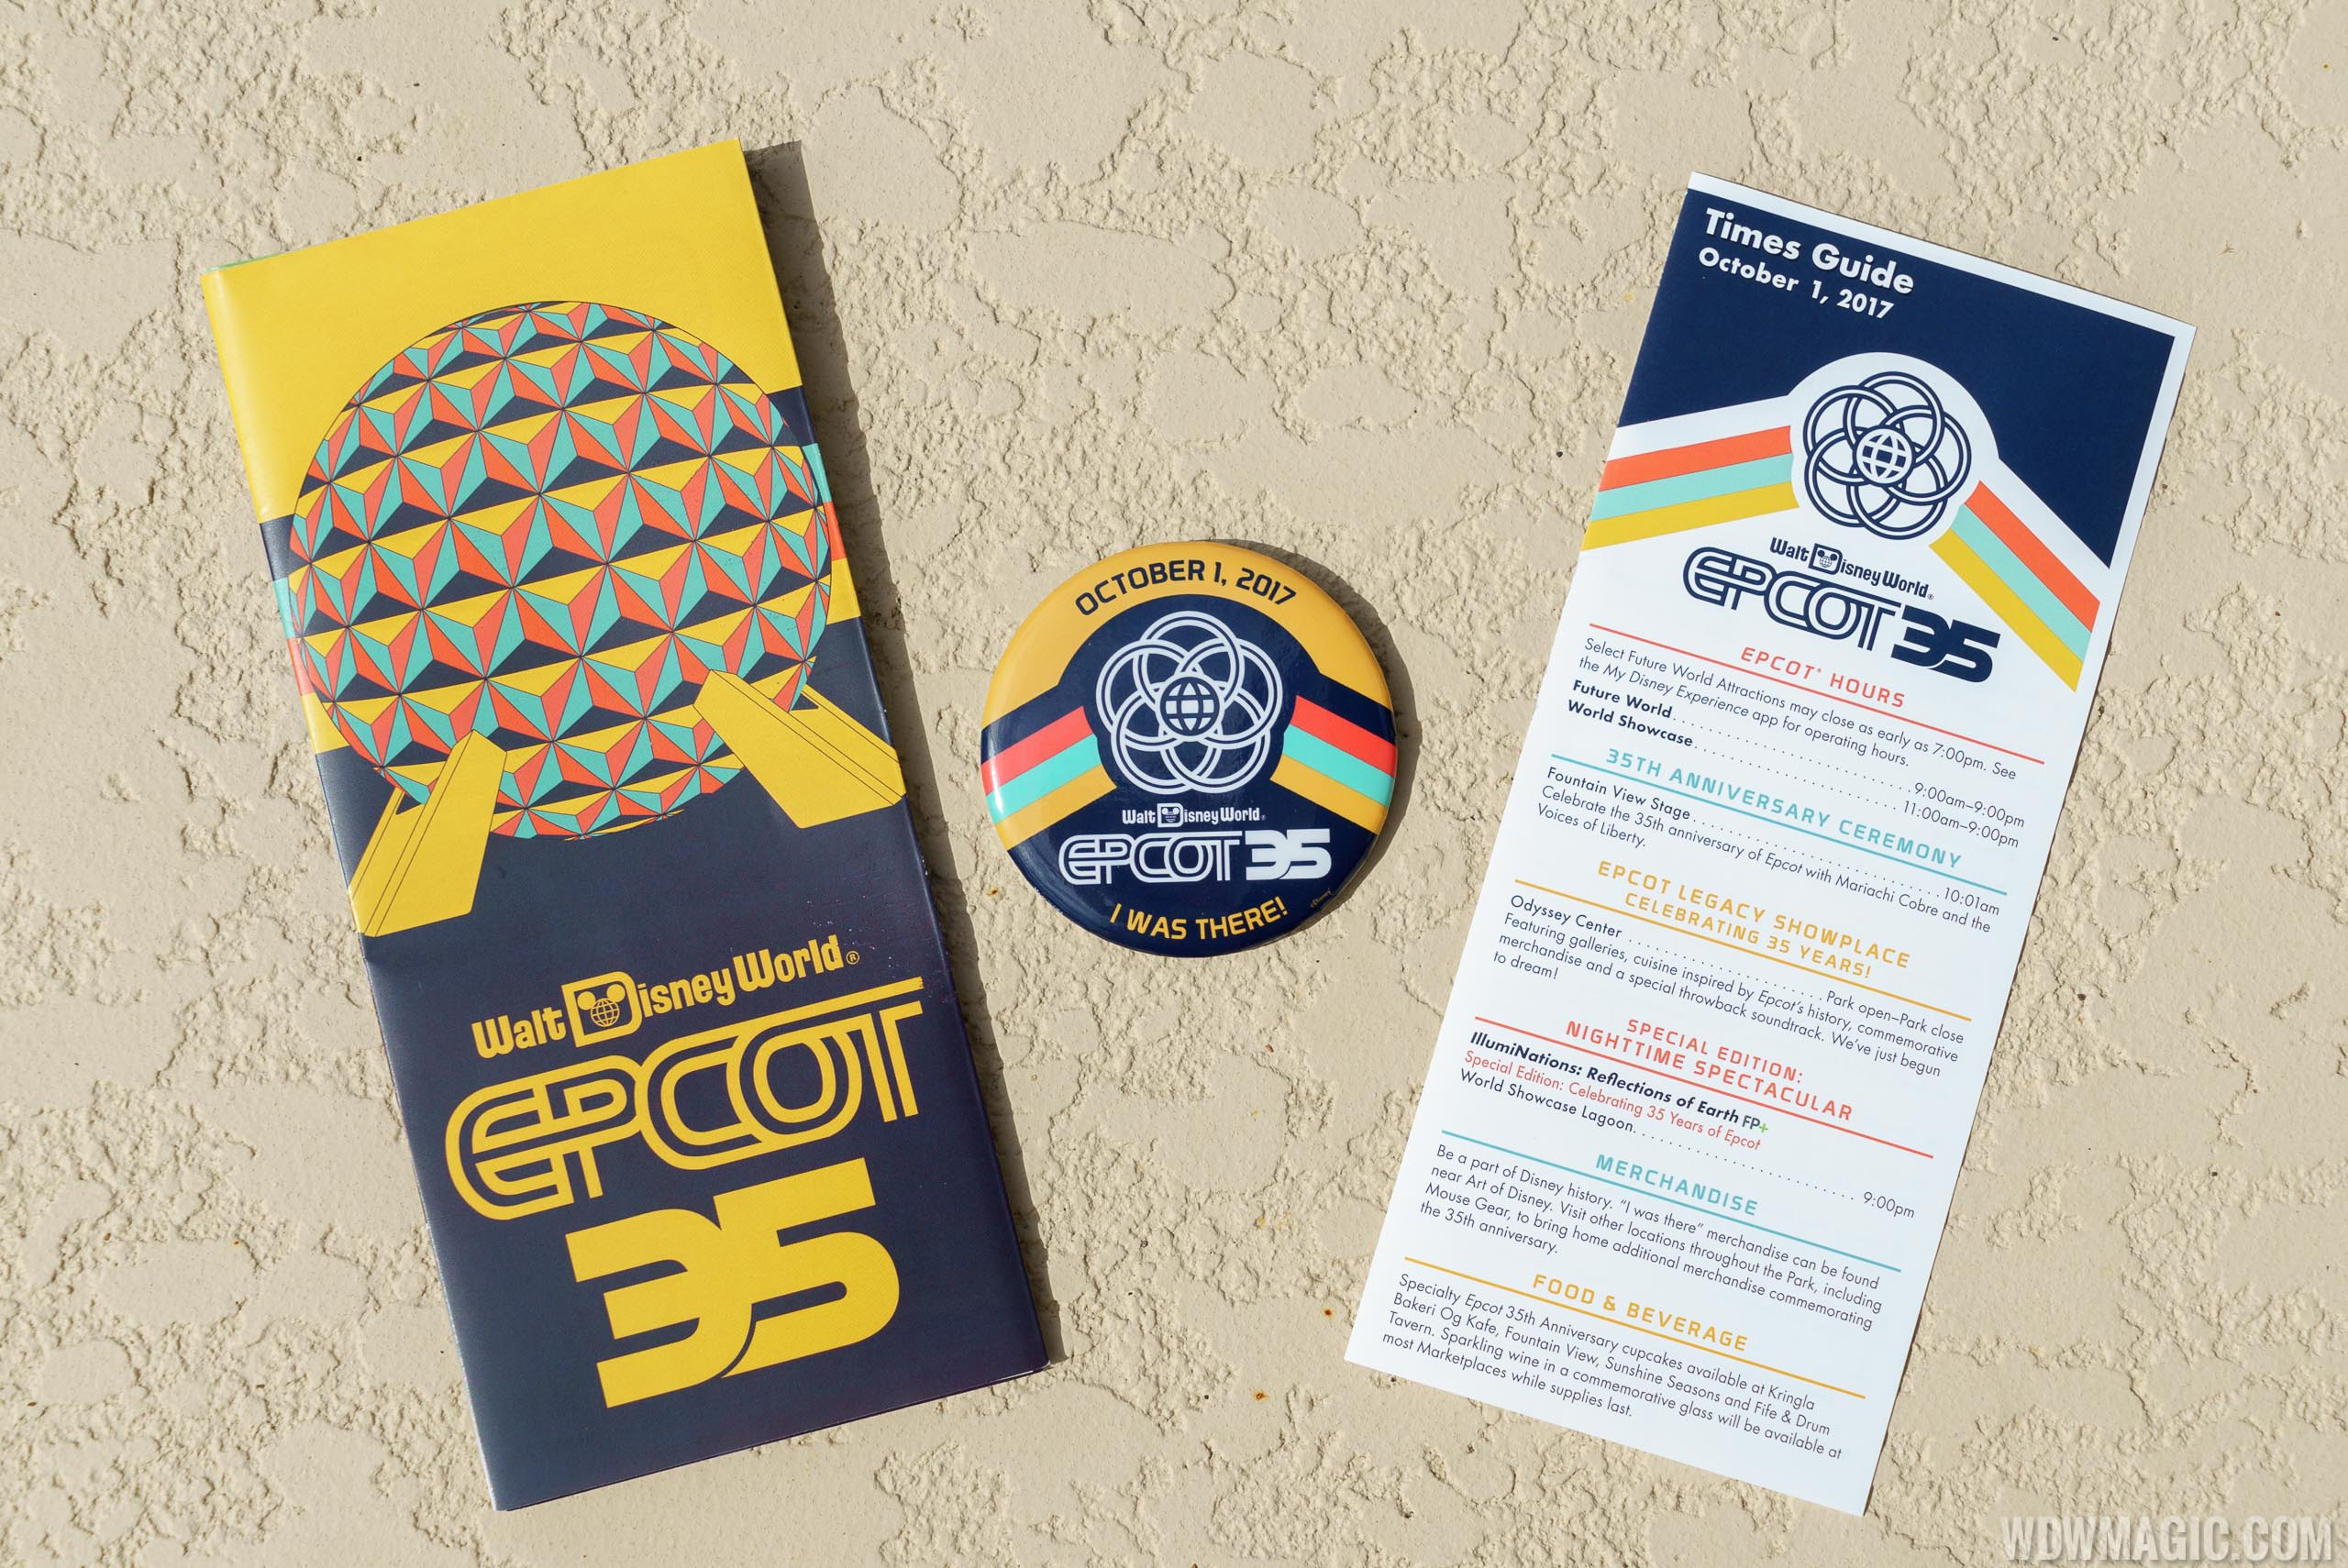 Epcot 35 Guide Map and Button